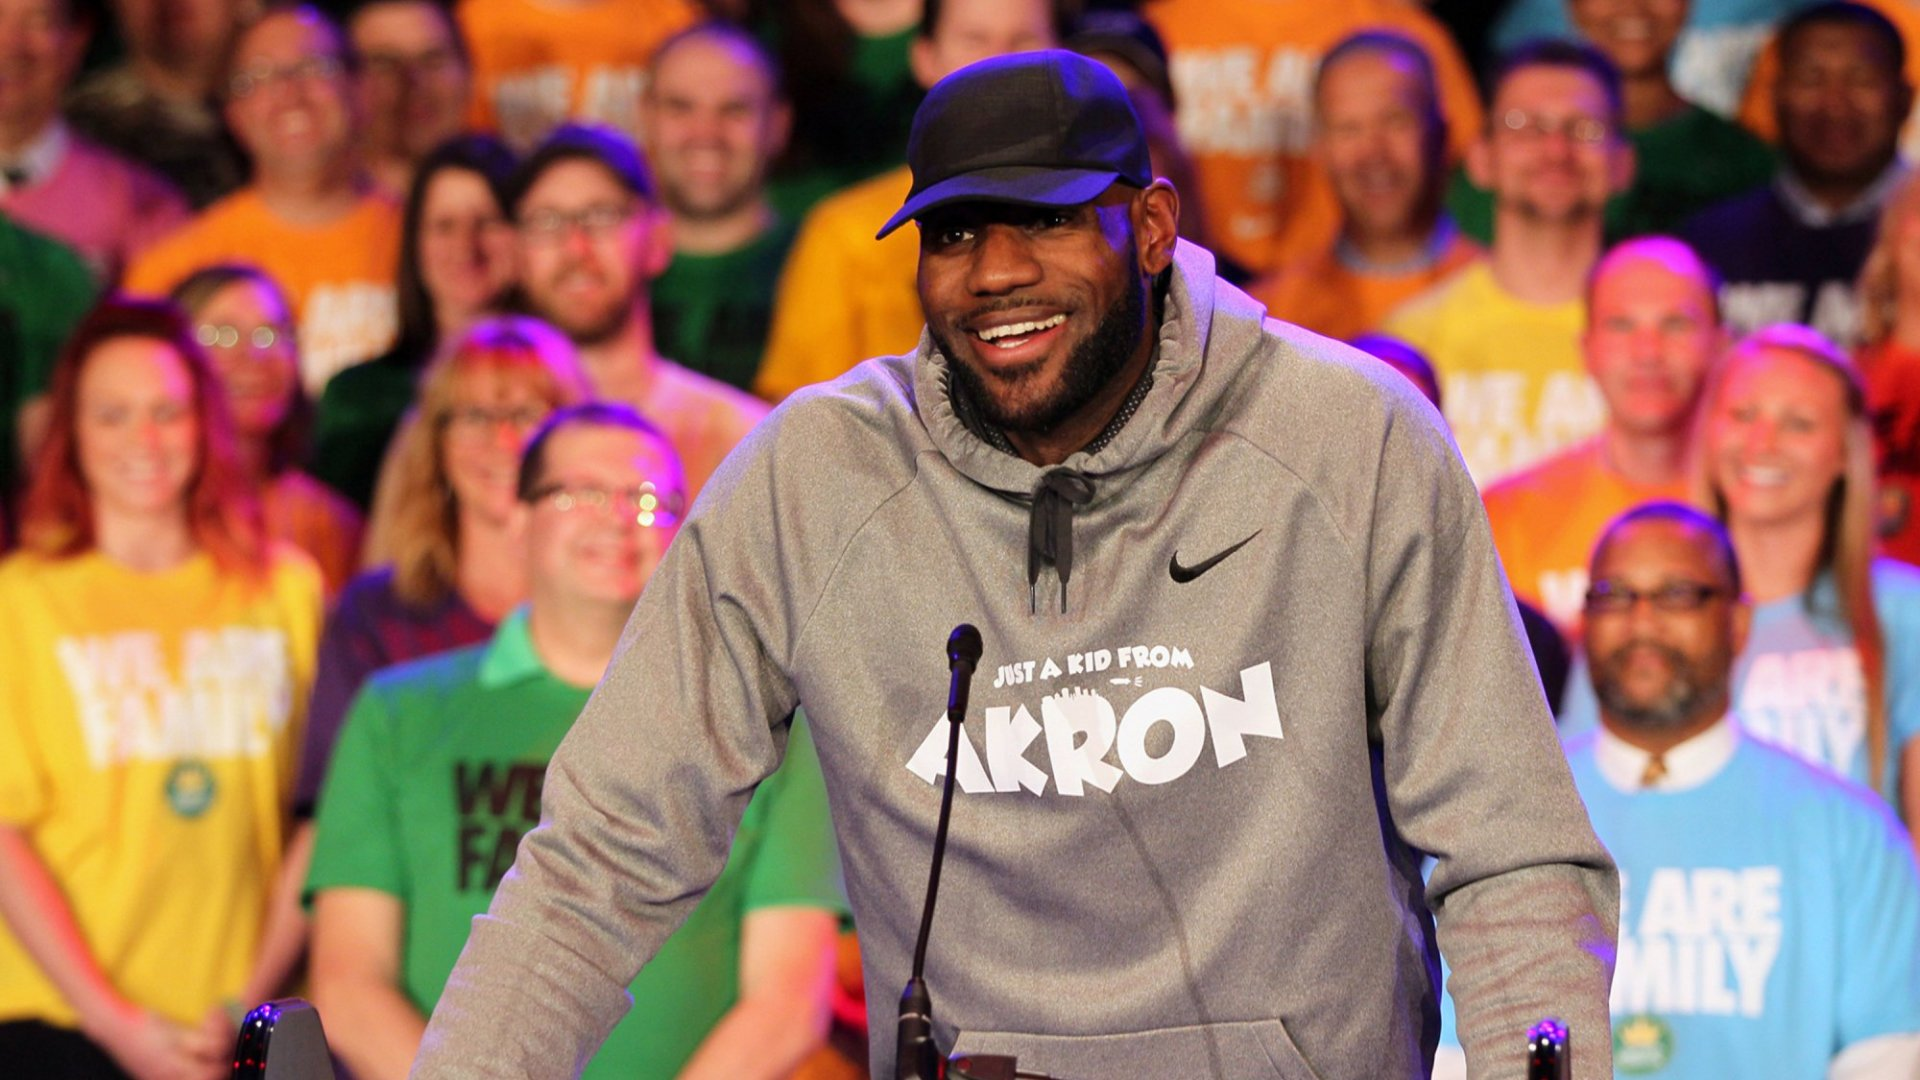 LeBron James Just Opened a School. It Shows 3 Major Lessons in Responsibility and Perseverance